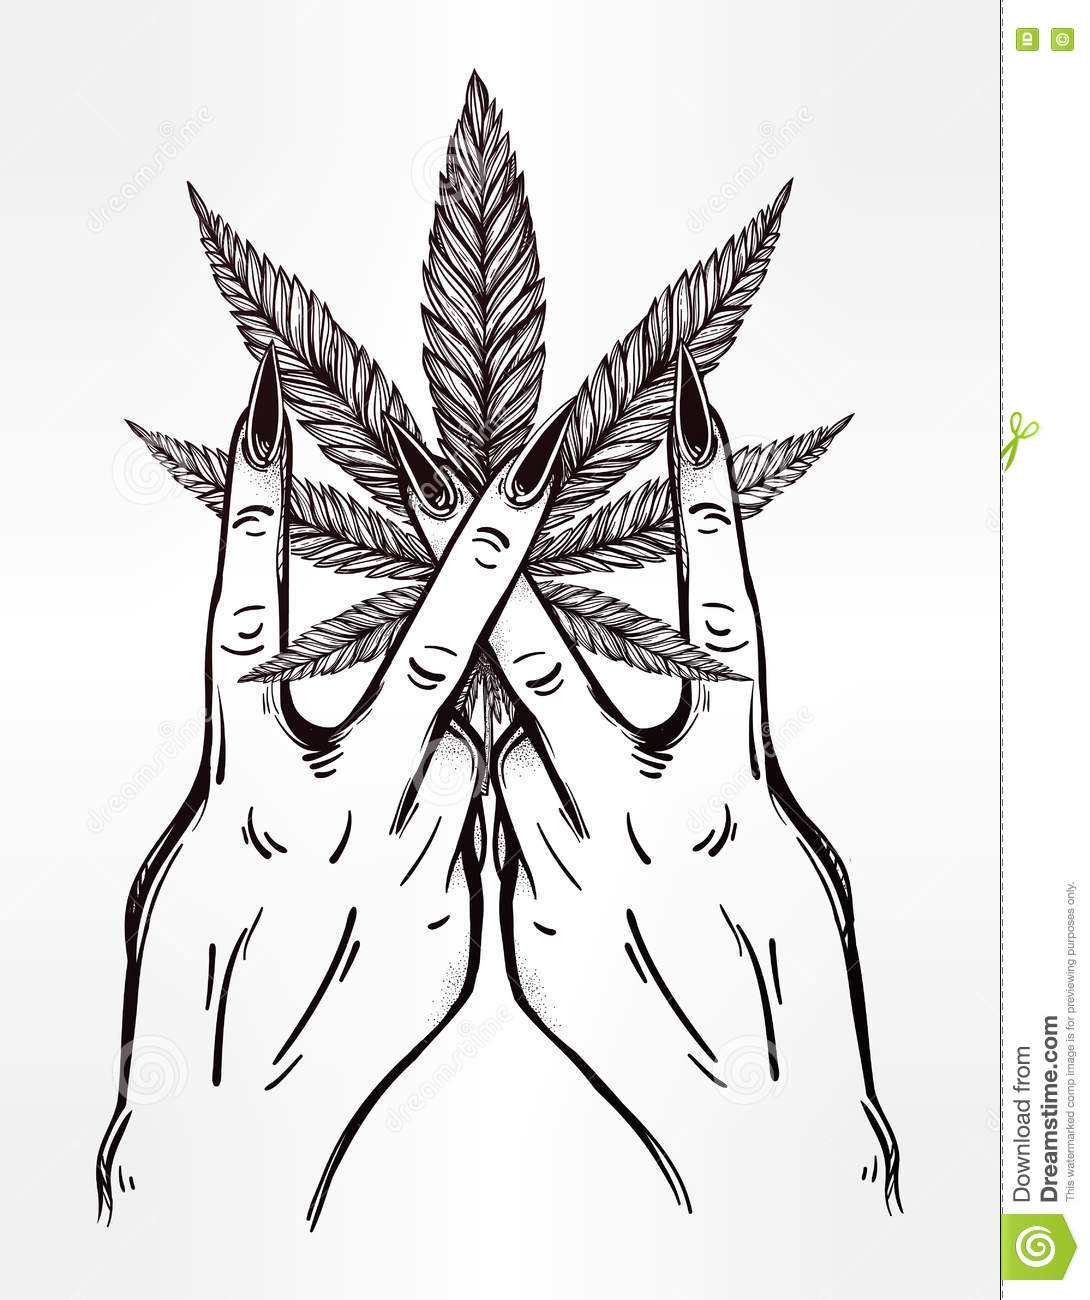 Hand And Fingers With Marijuana Leaf. Stock Vector